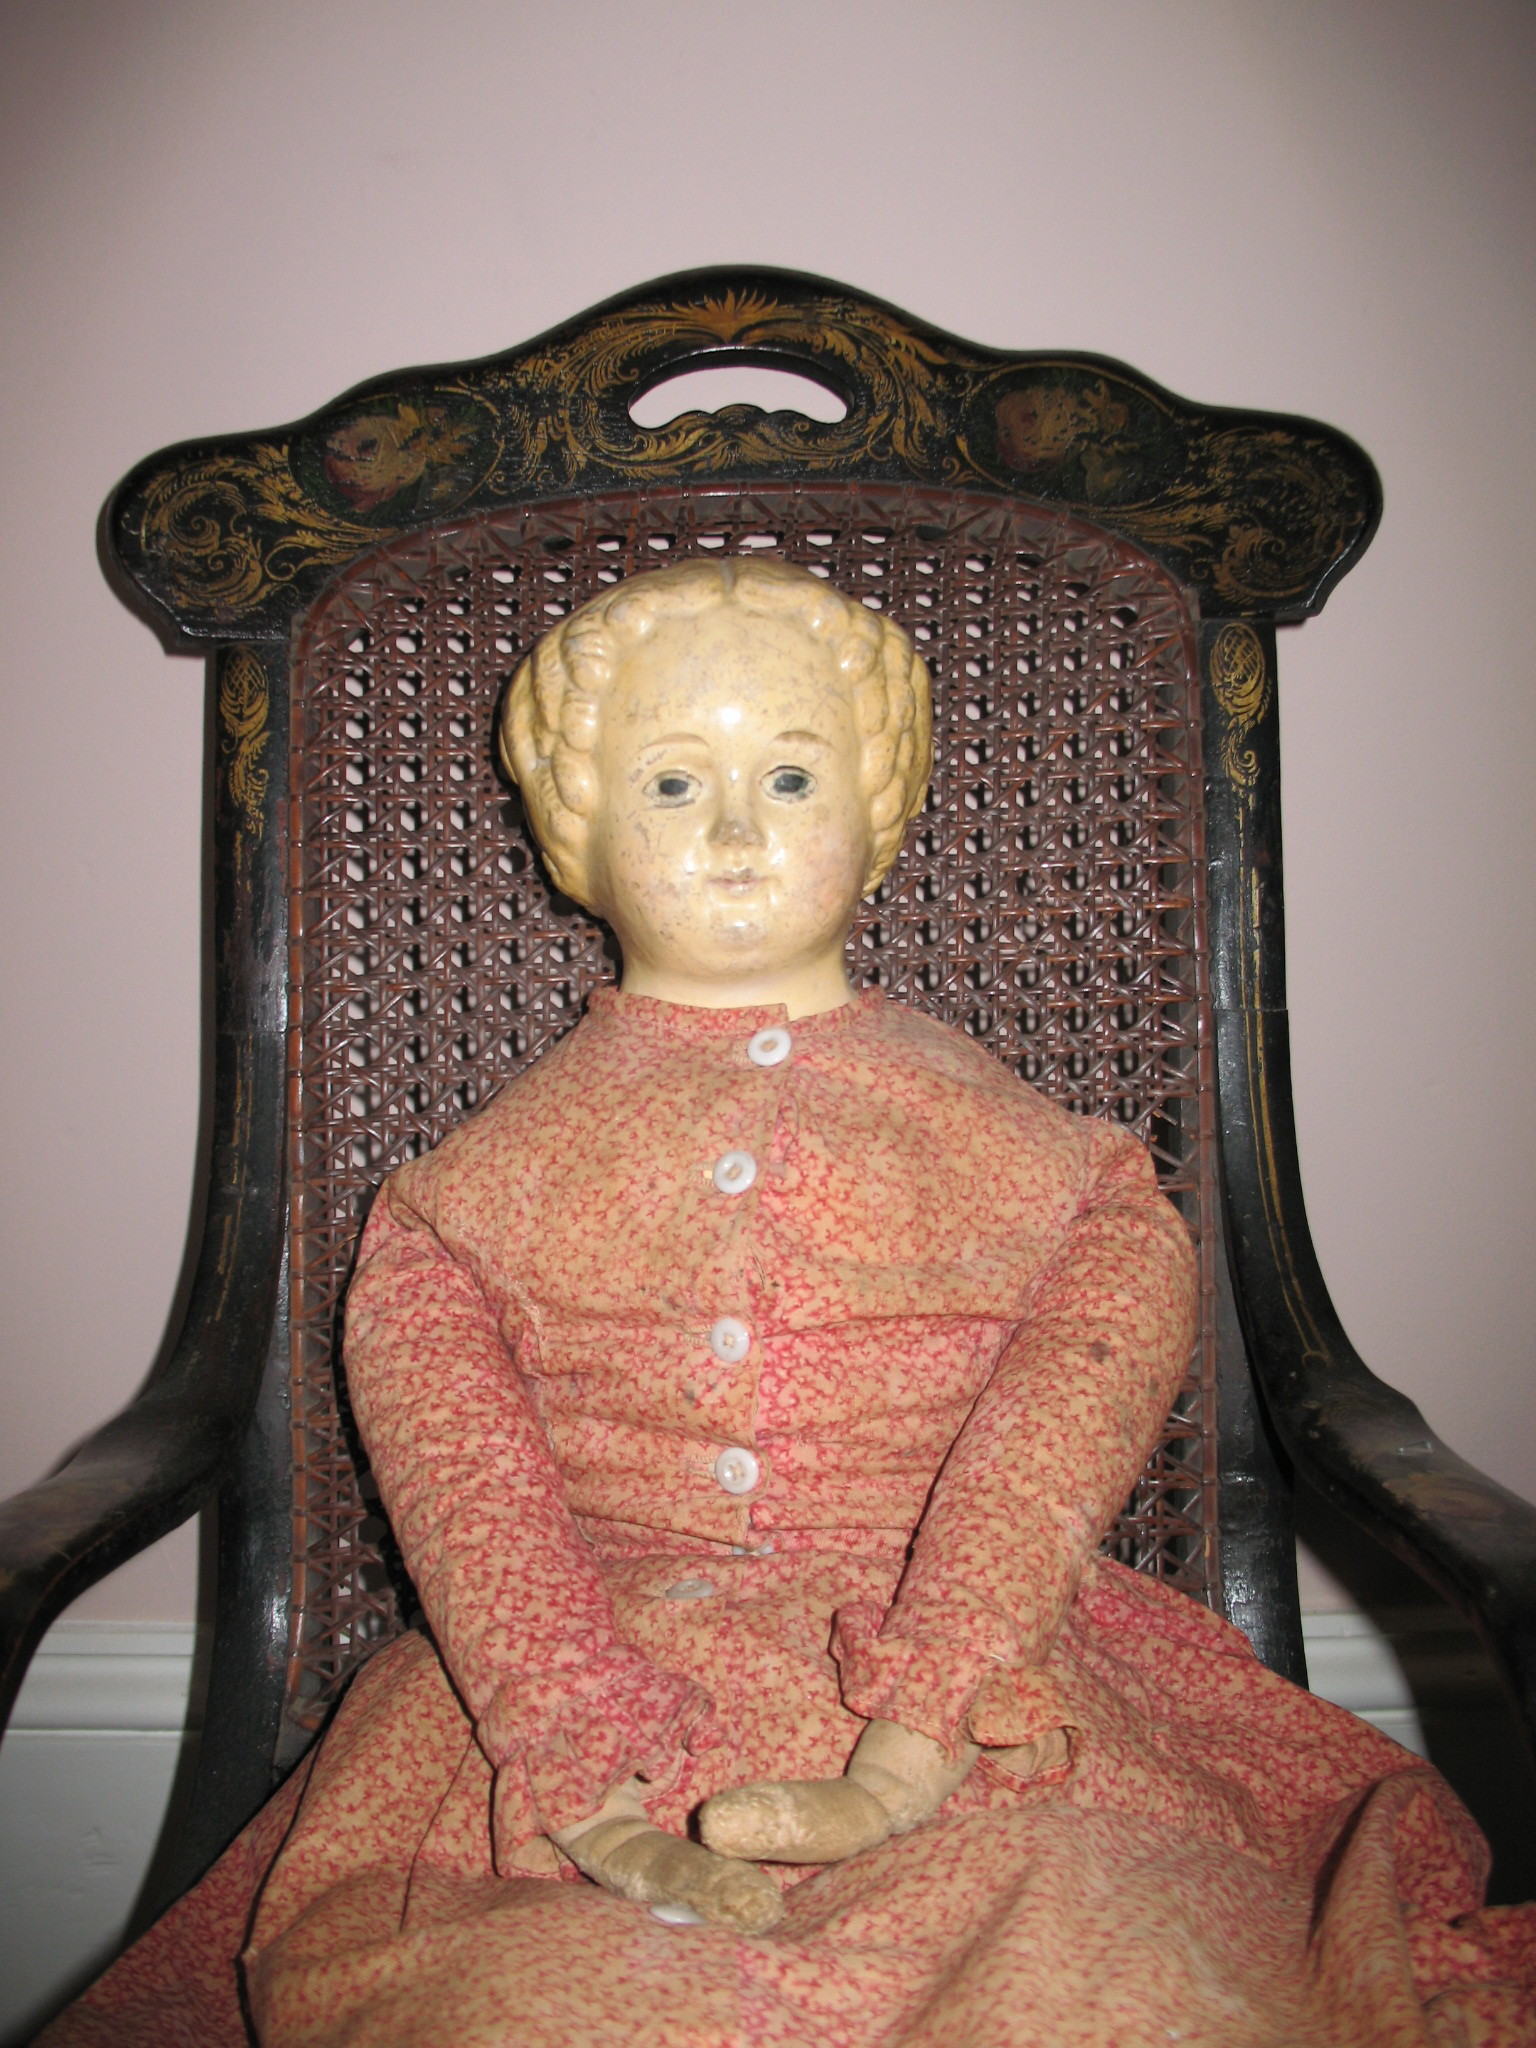 The Case of the Cursed Doll - A walking murder mystery